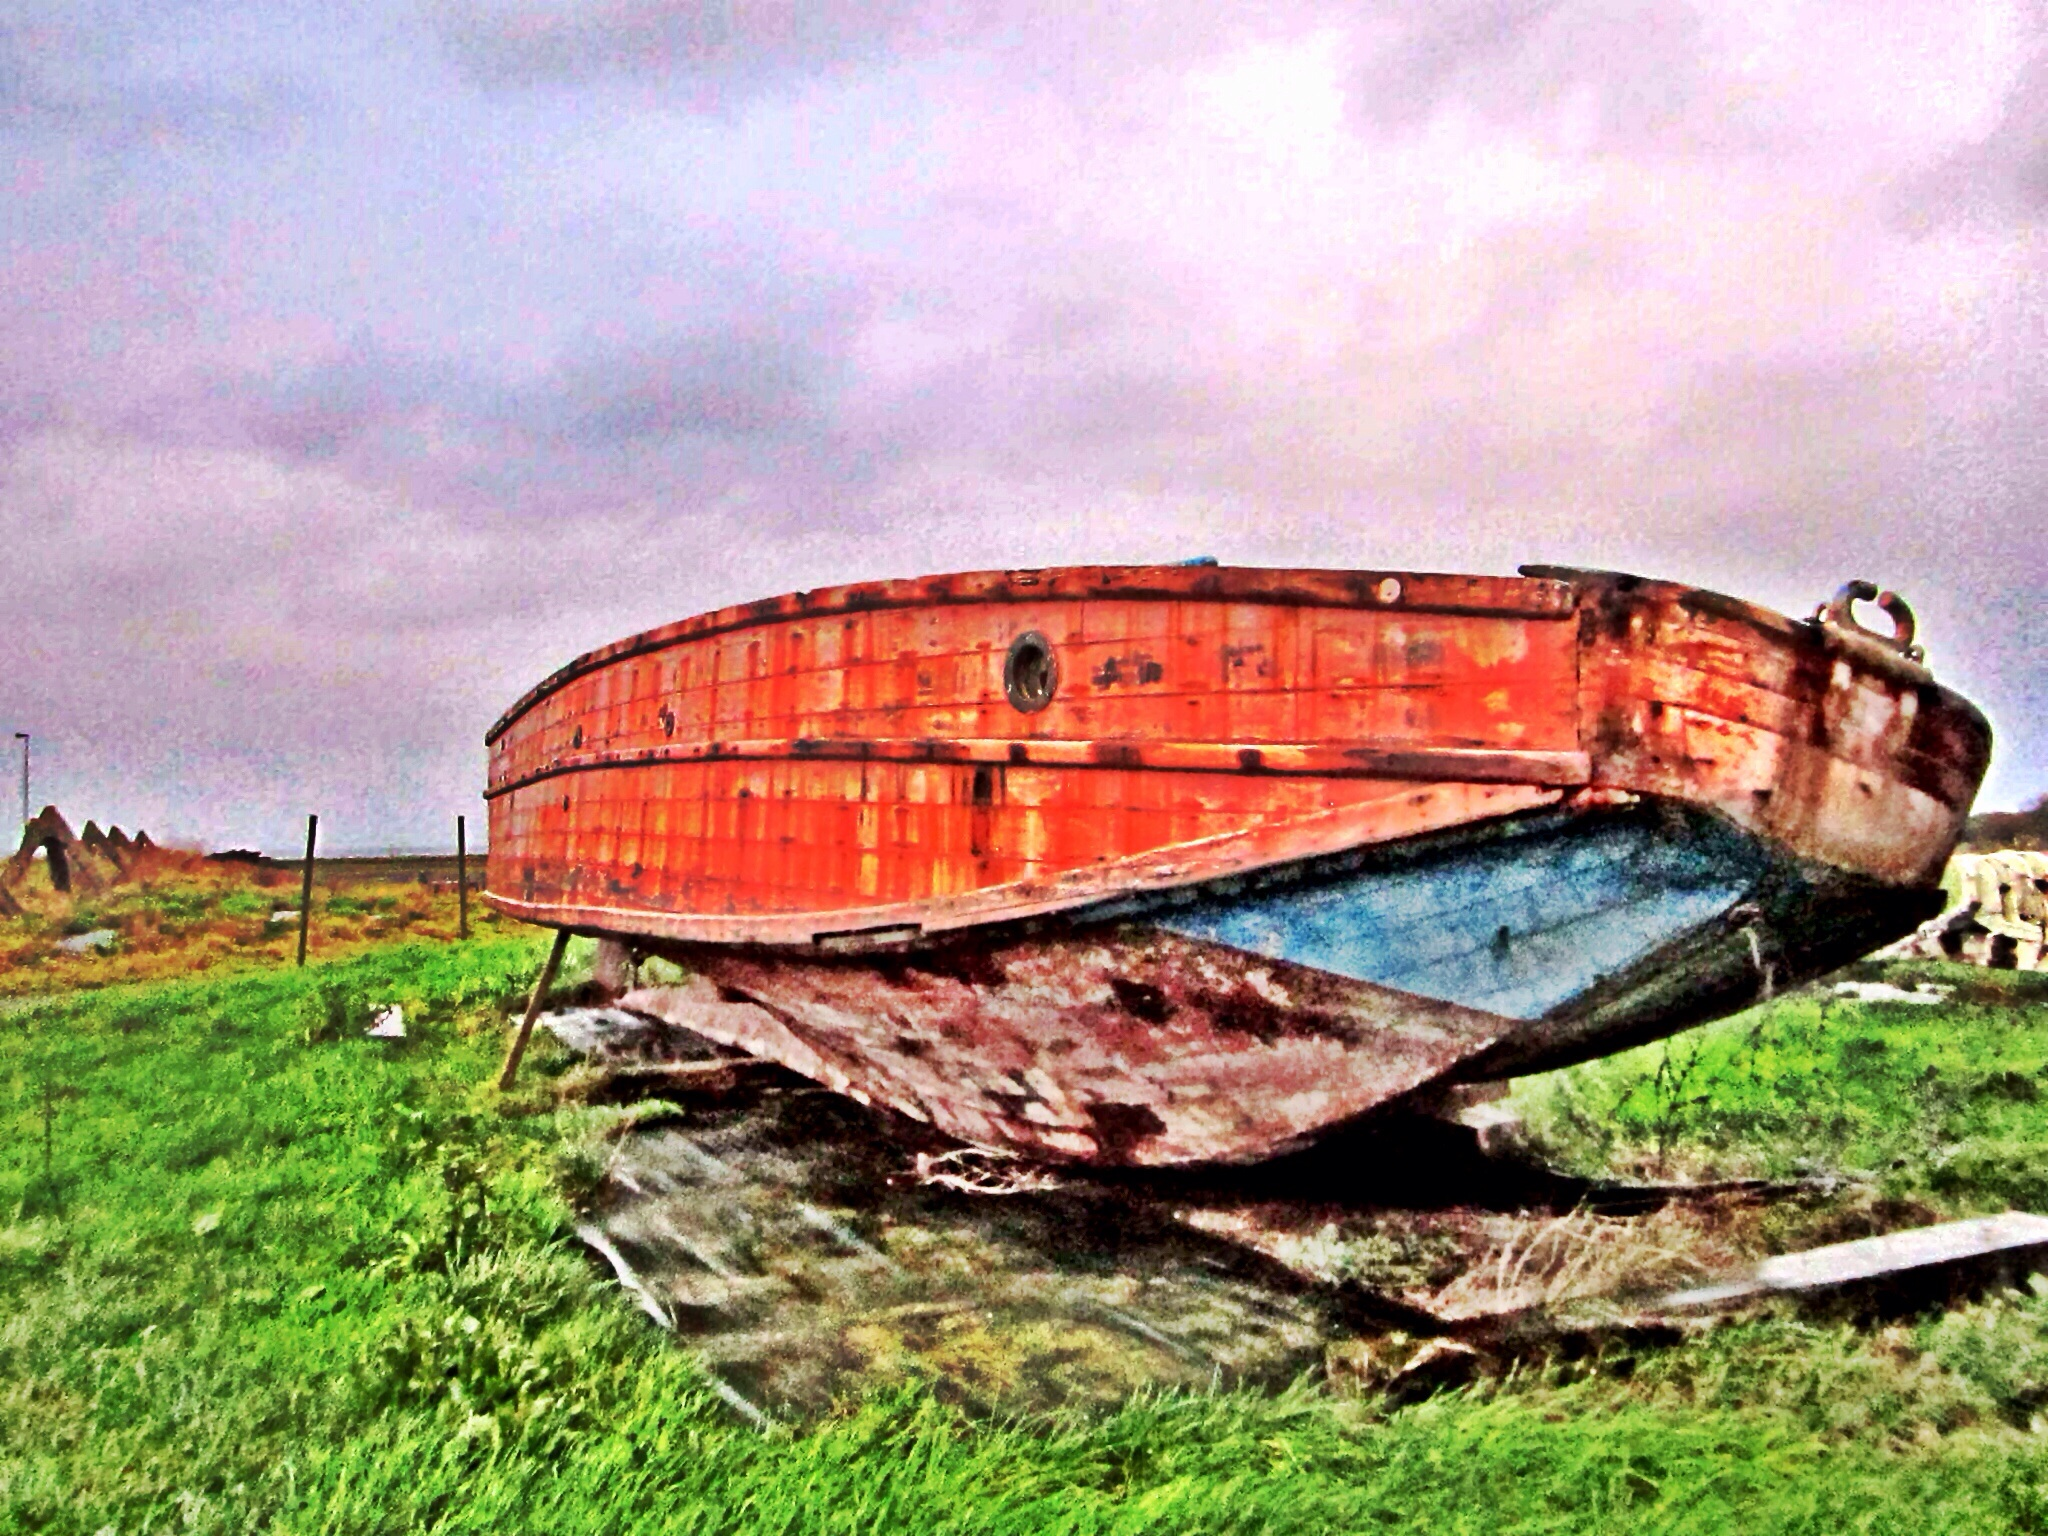 Landing craft used by Allied troops in the DDay invasion